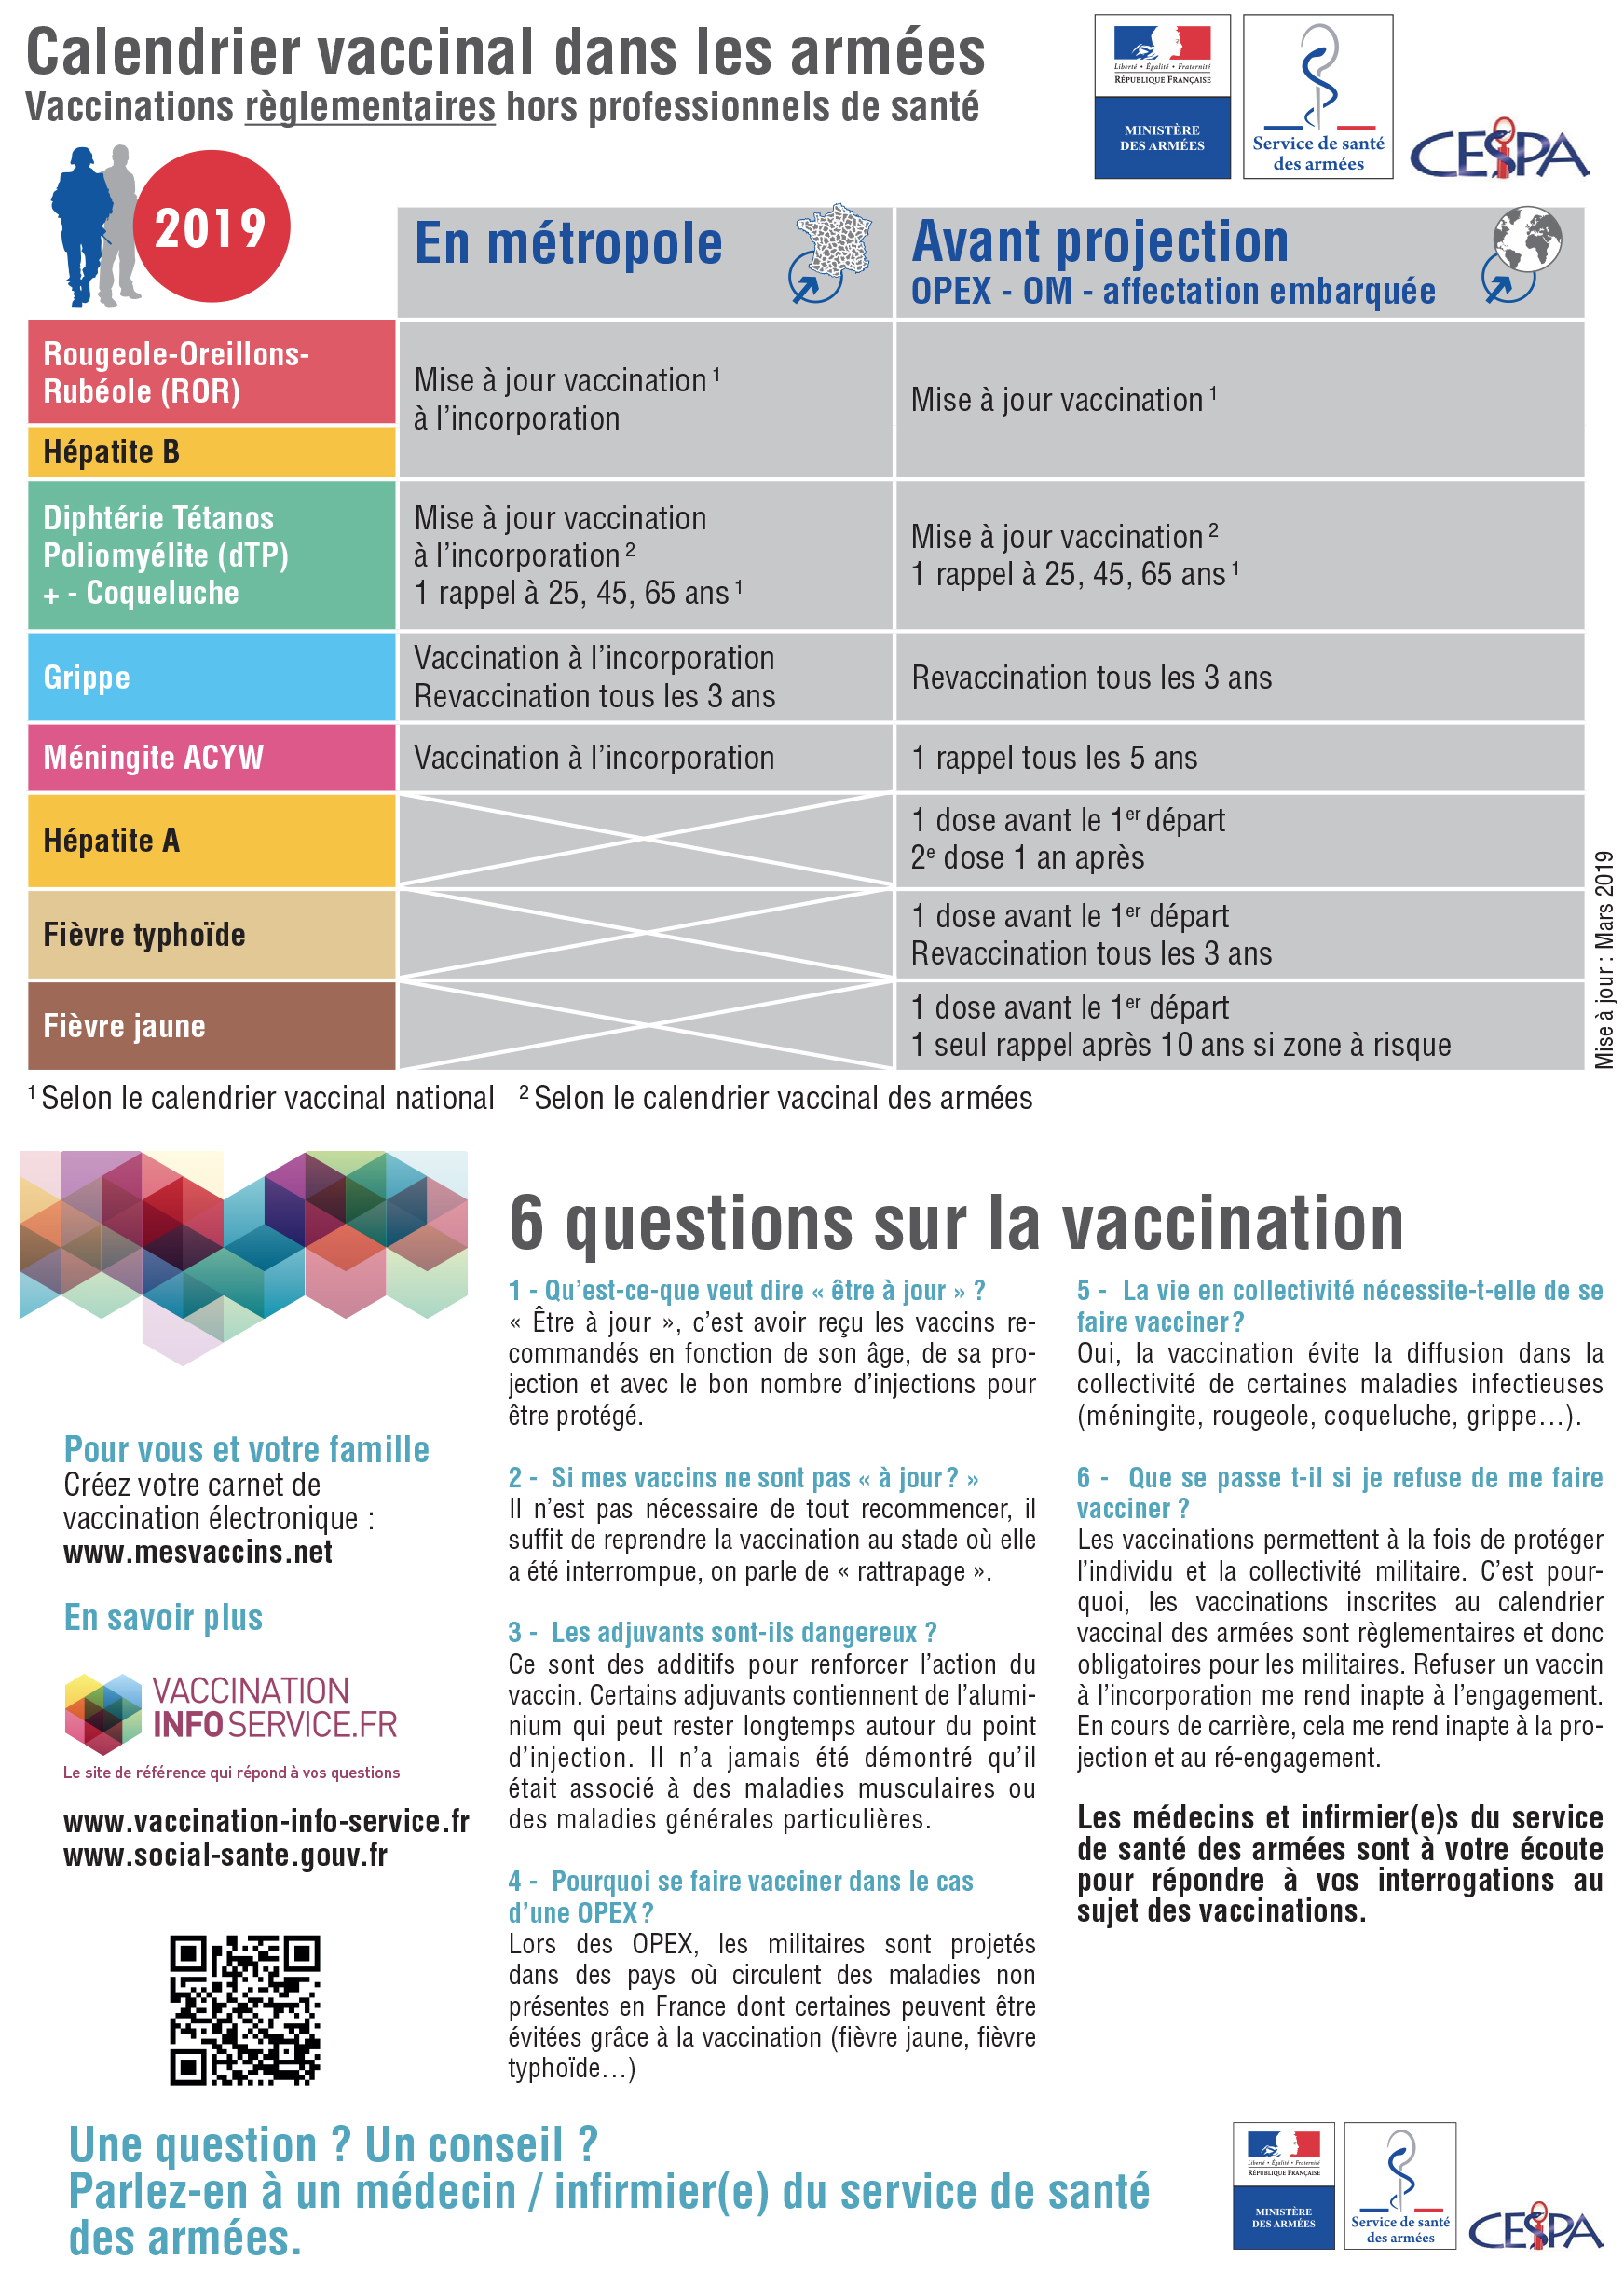 Vaccins Calendrier.Militaires Vaccination Info Service